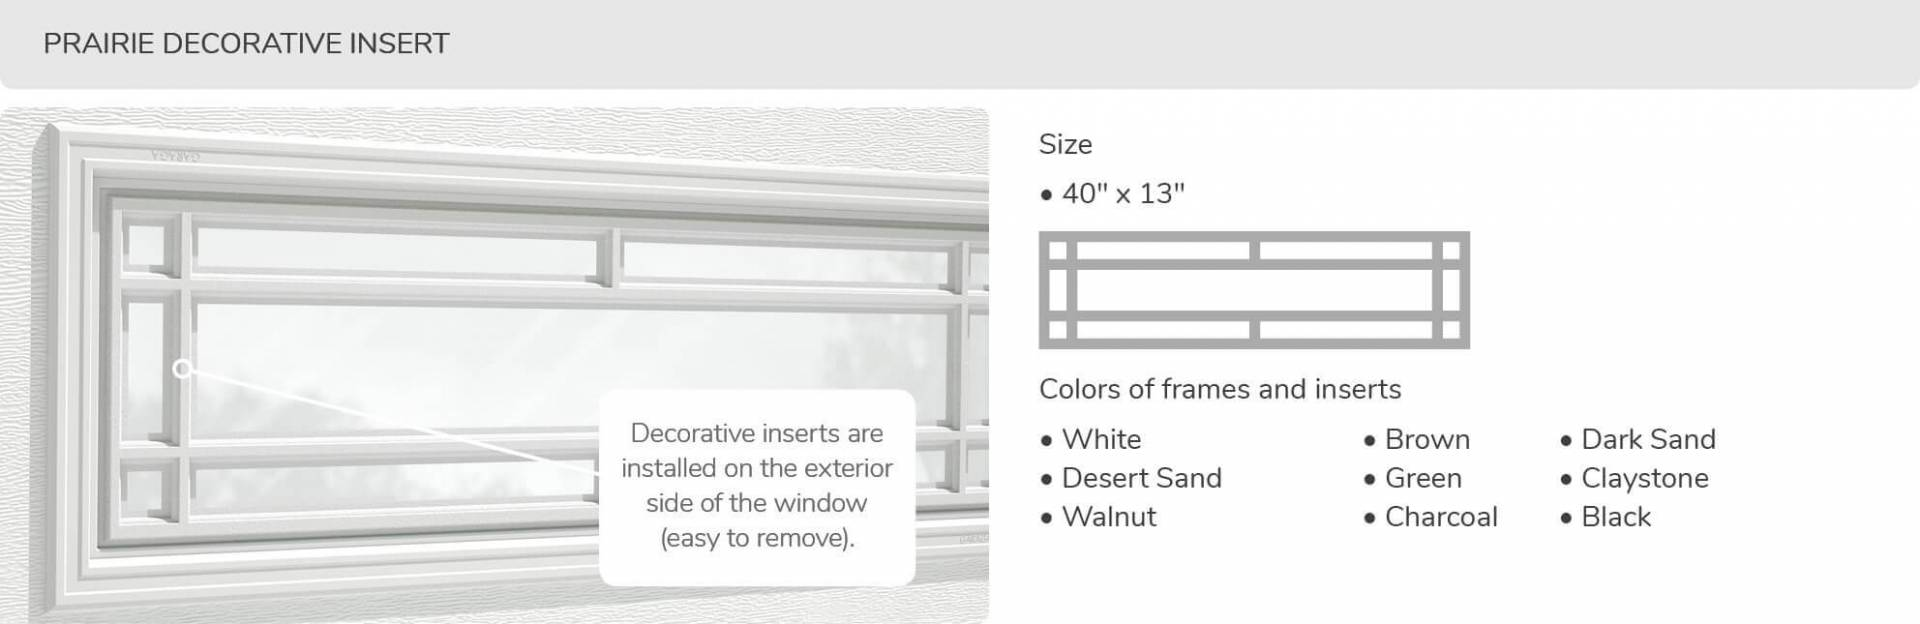 Prairie Decorative Insert, 40' x 13', available for door R-16